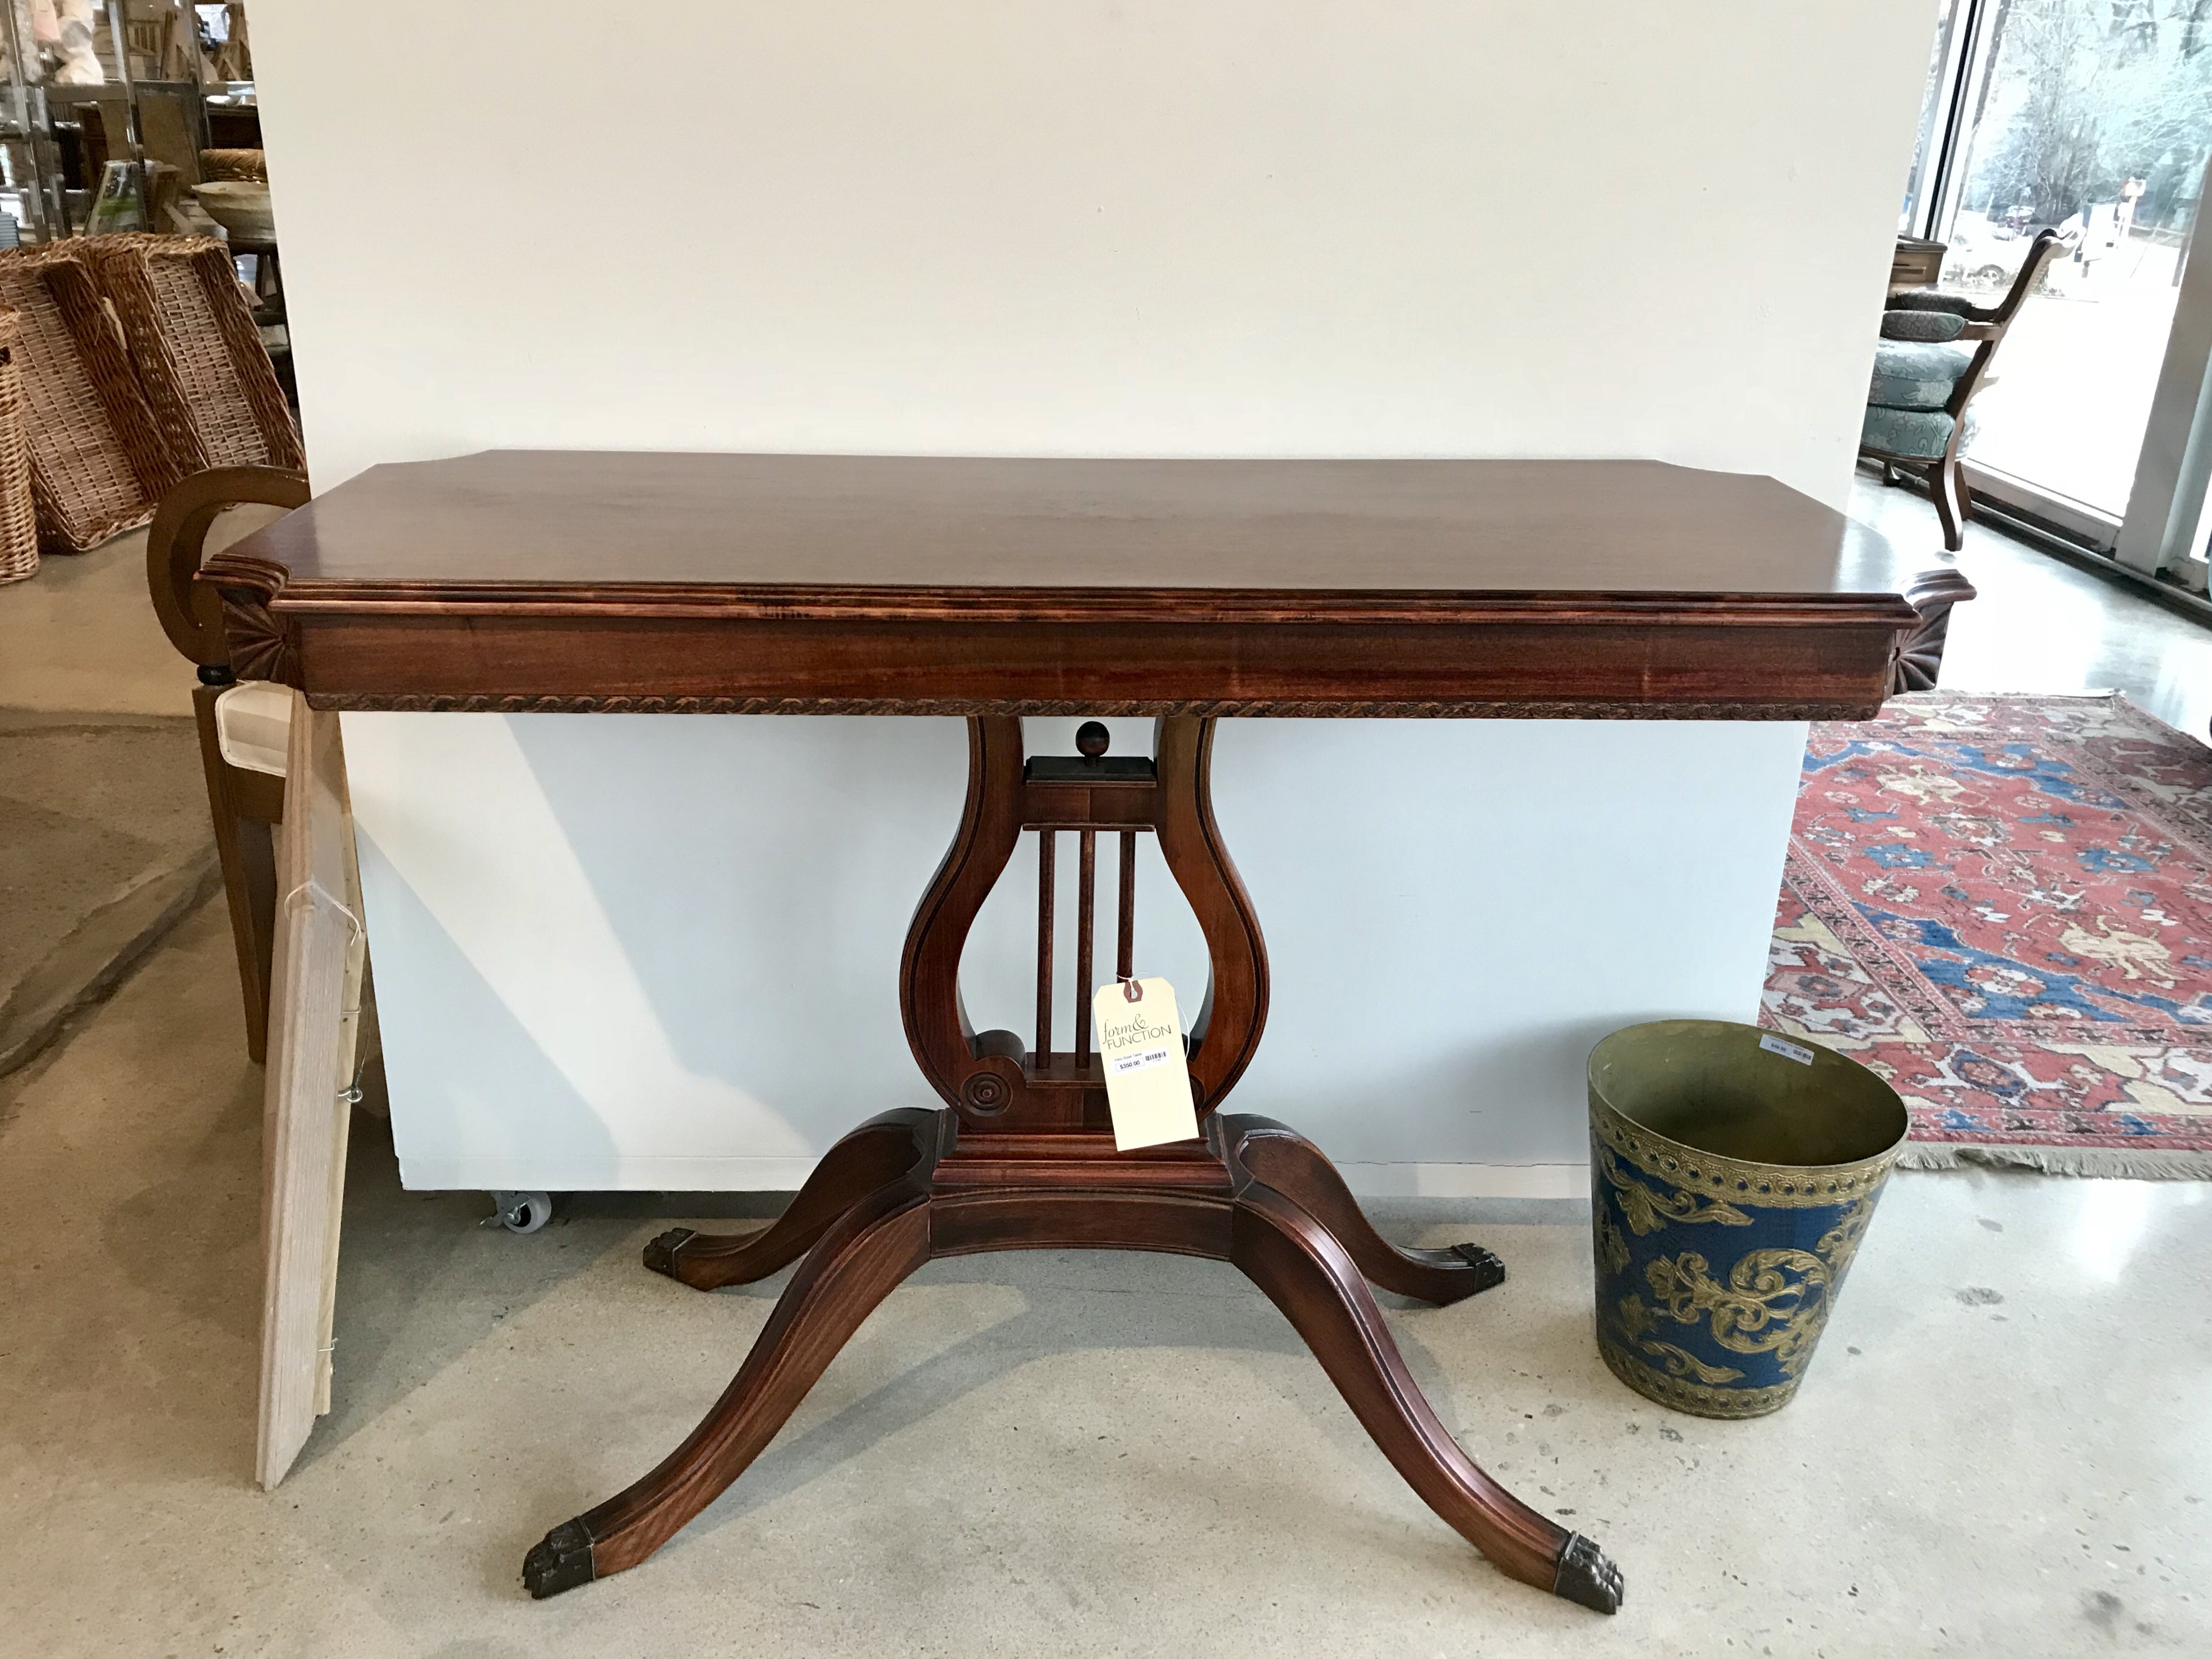 Harp Base Table